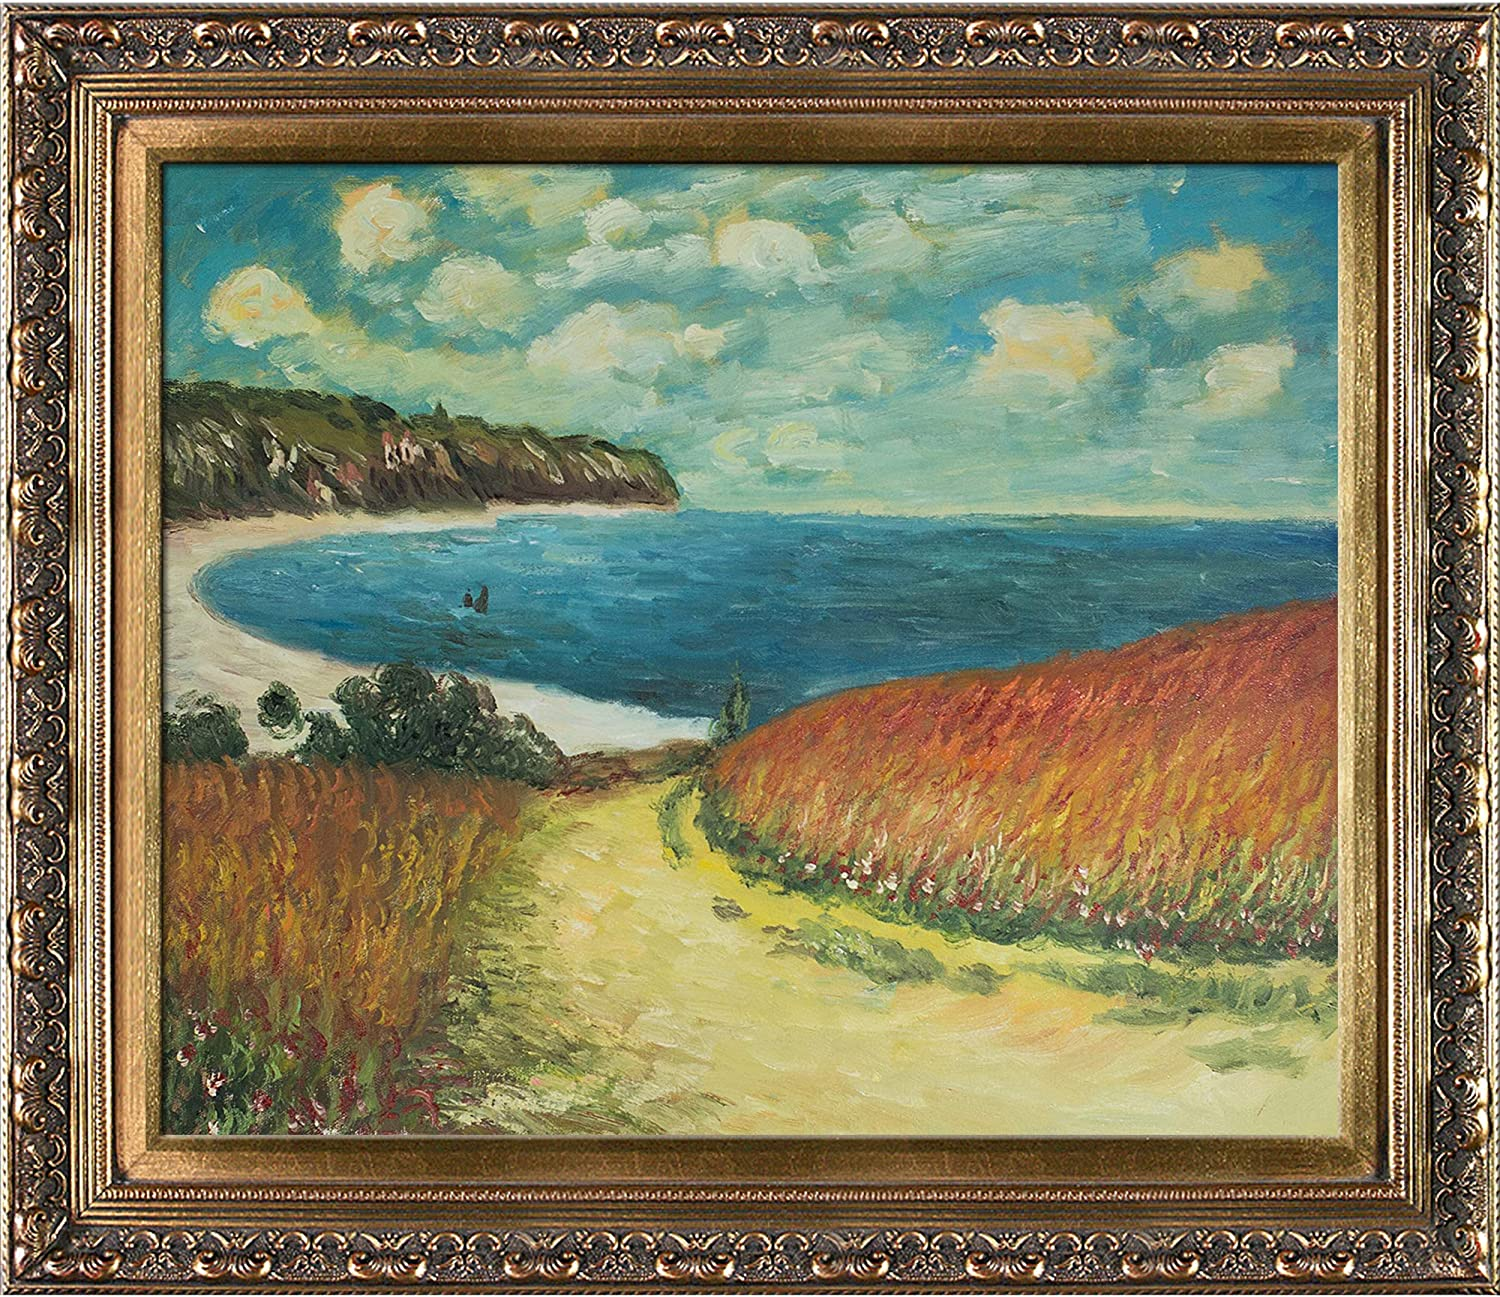 overstockArt Monet Meadow Road to wi Japan's largest assortment Oil Painting Pourville 1882 Sale price